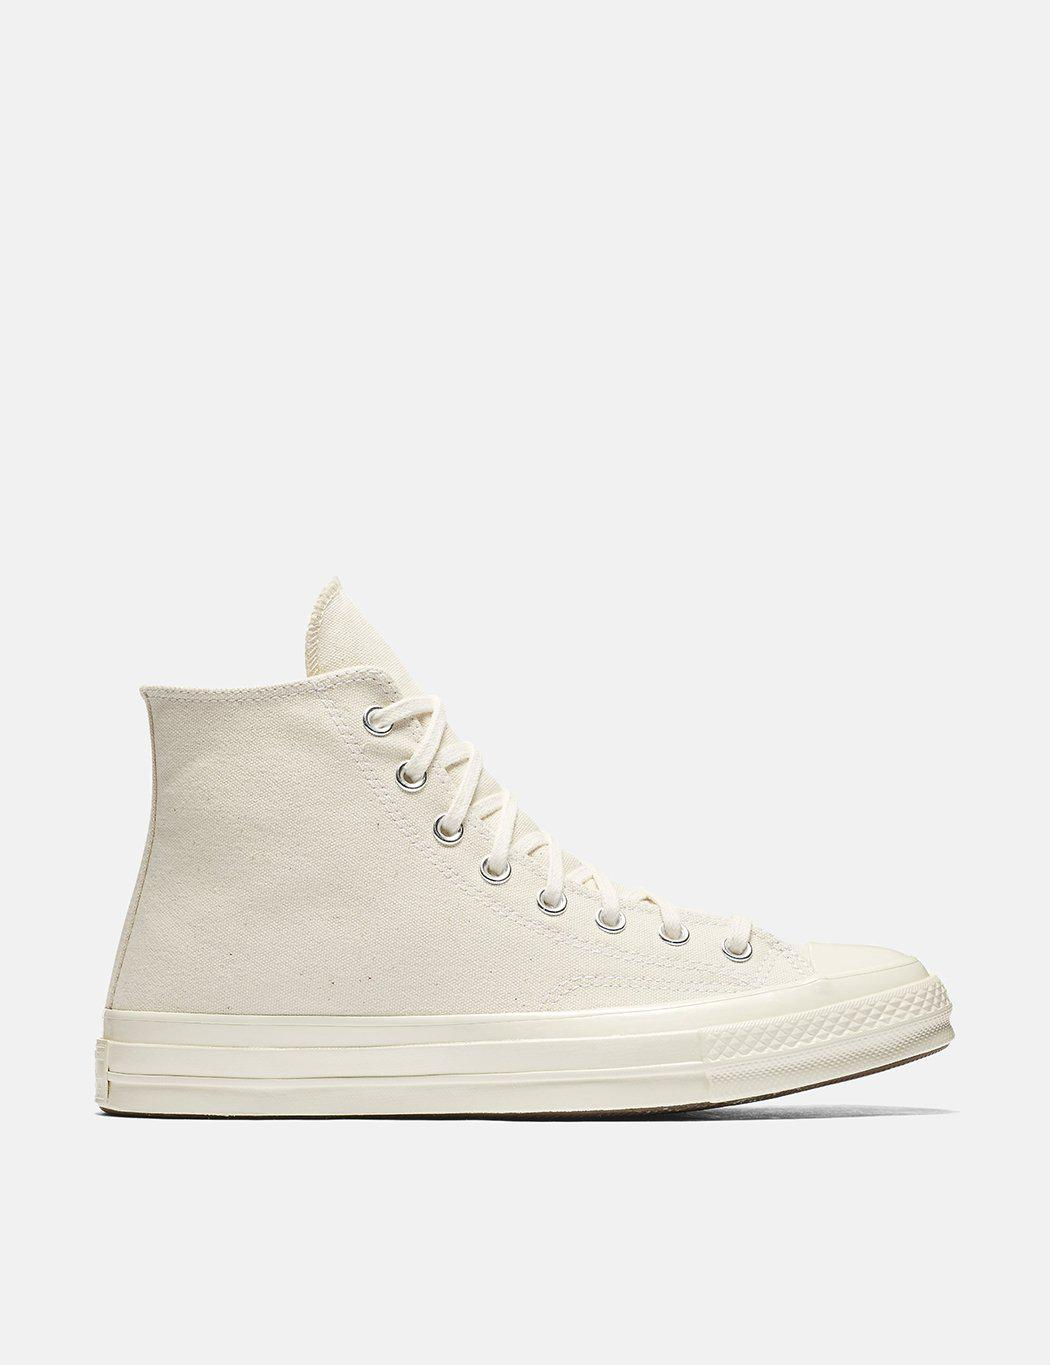 b42f378fa51f Lyst - Converse 70 s Chuck Taylor Hi 151227c (canvas) in Natural for Men